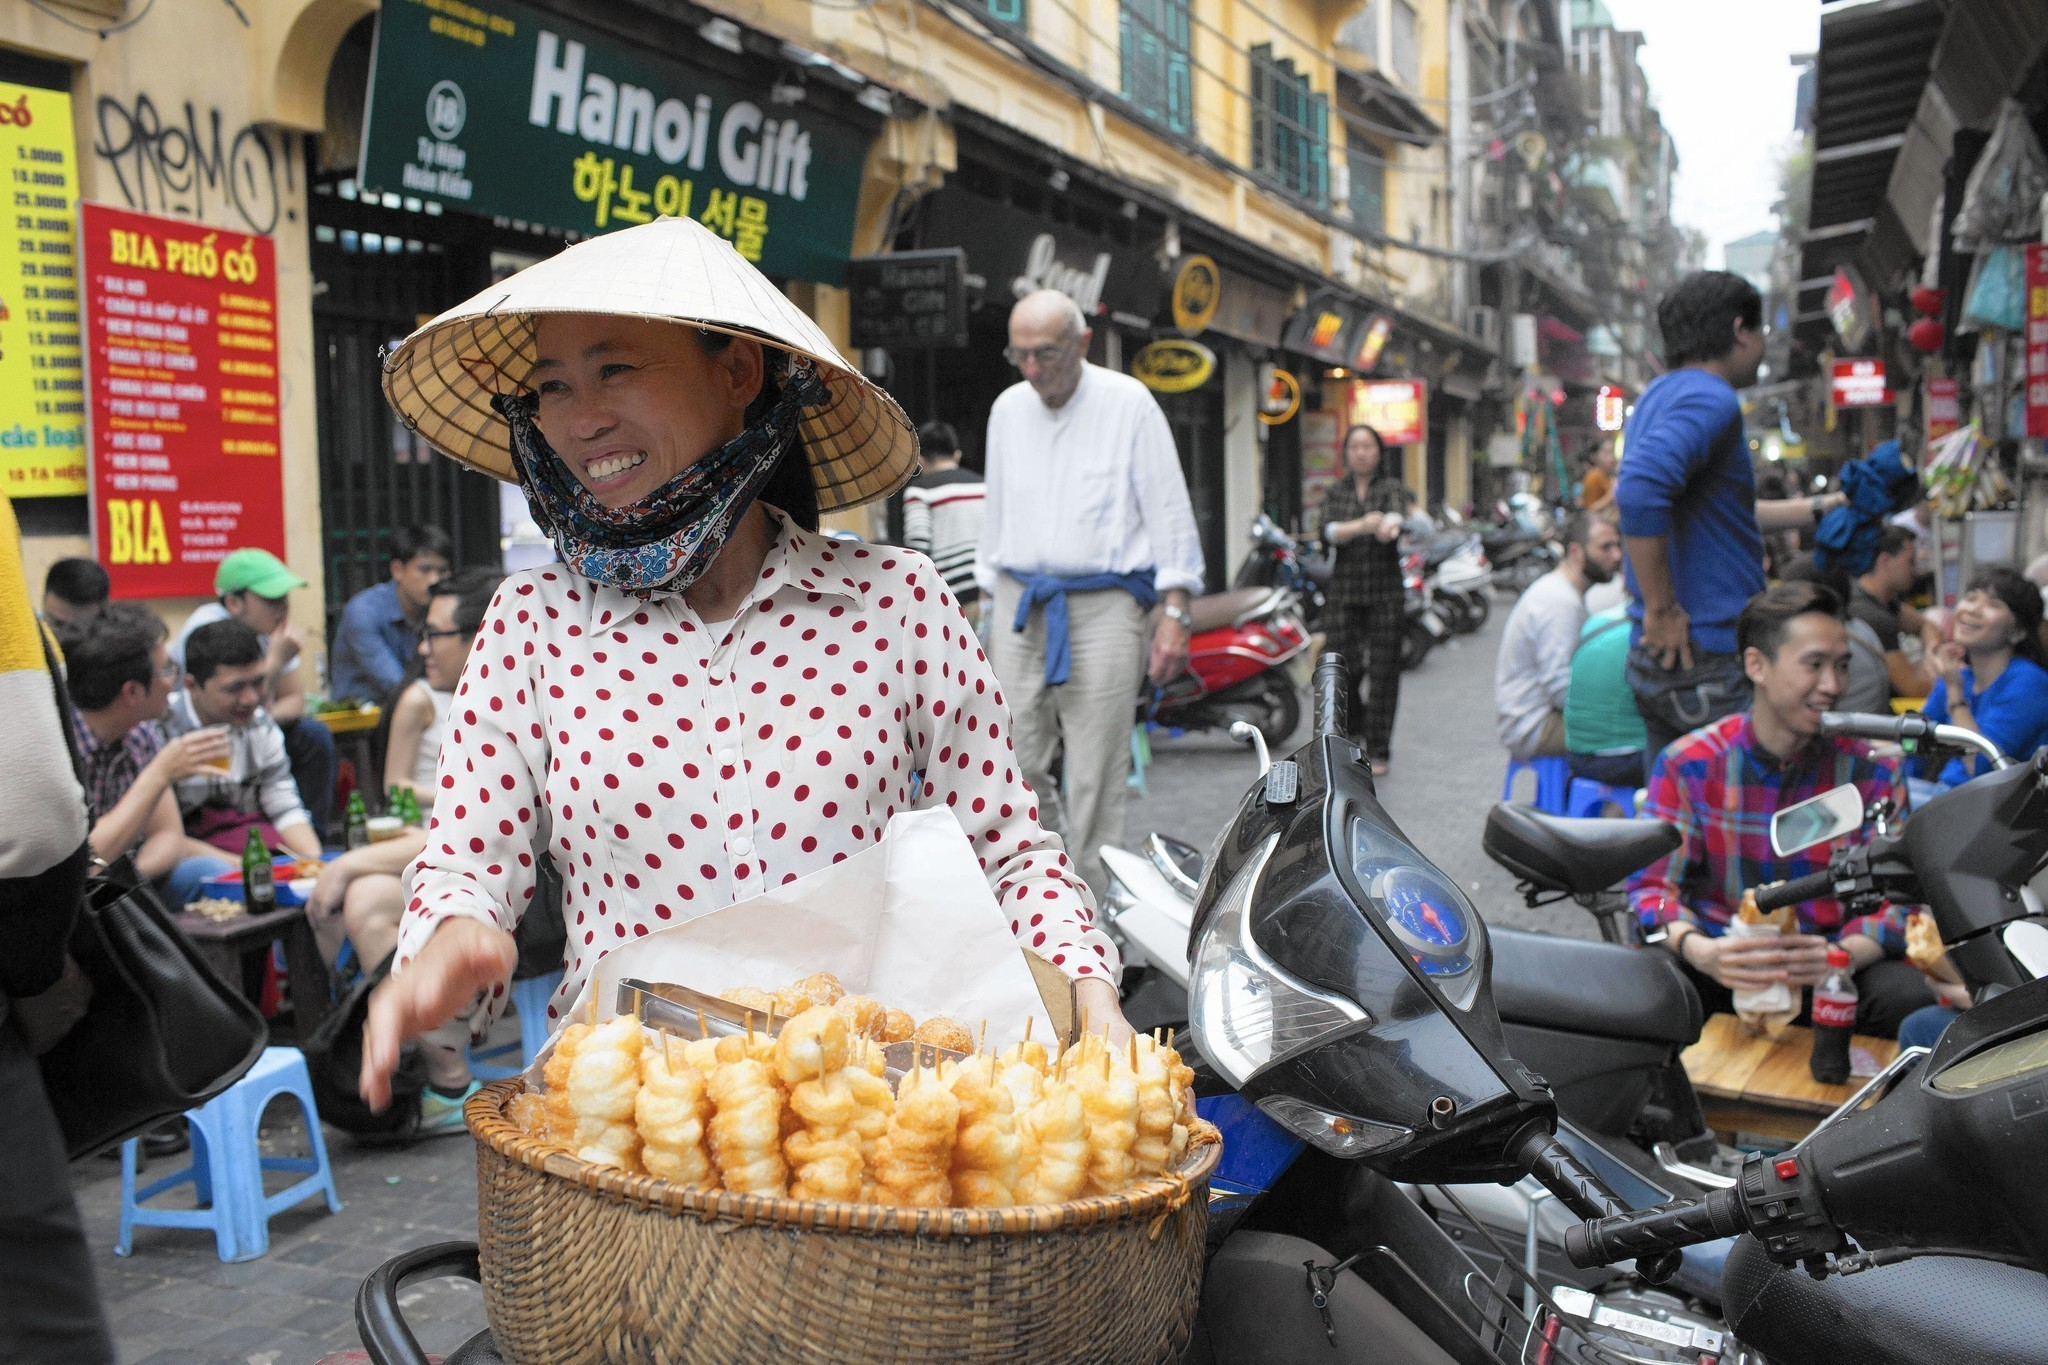 Shifting visa fees can make travel to Vietnam confusing, costly